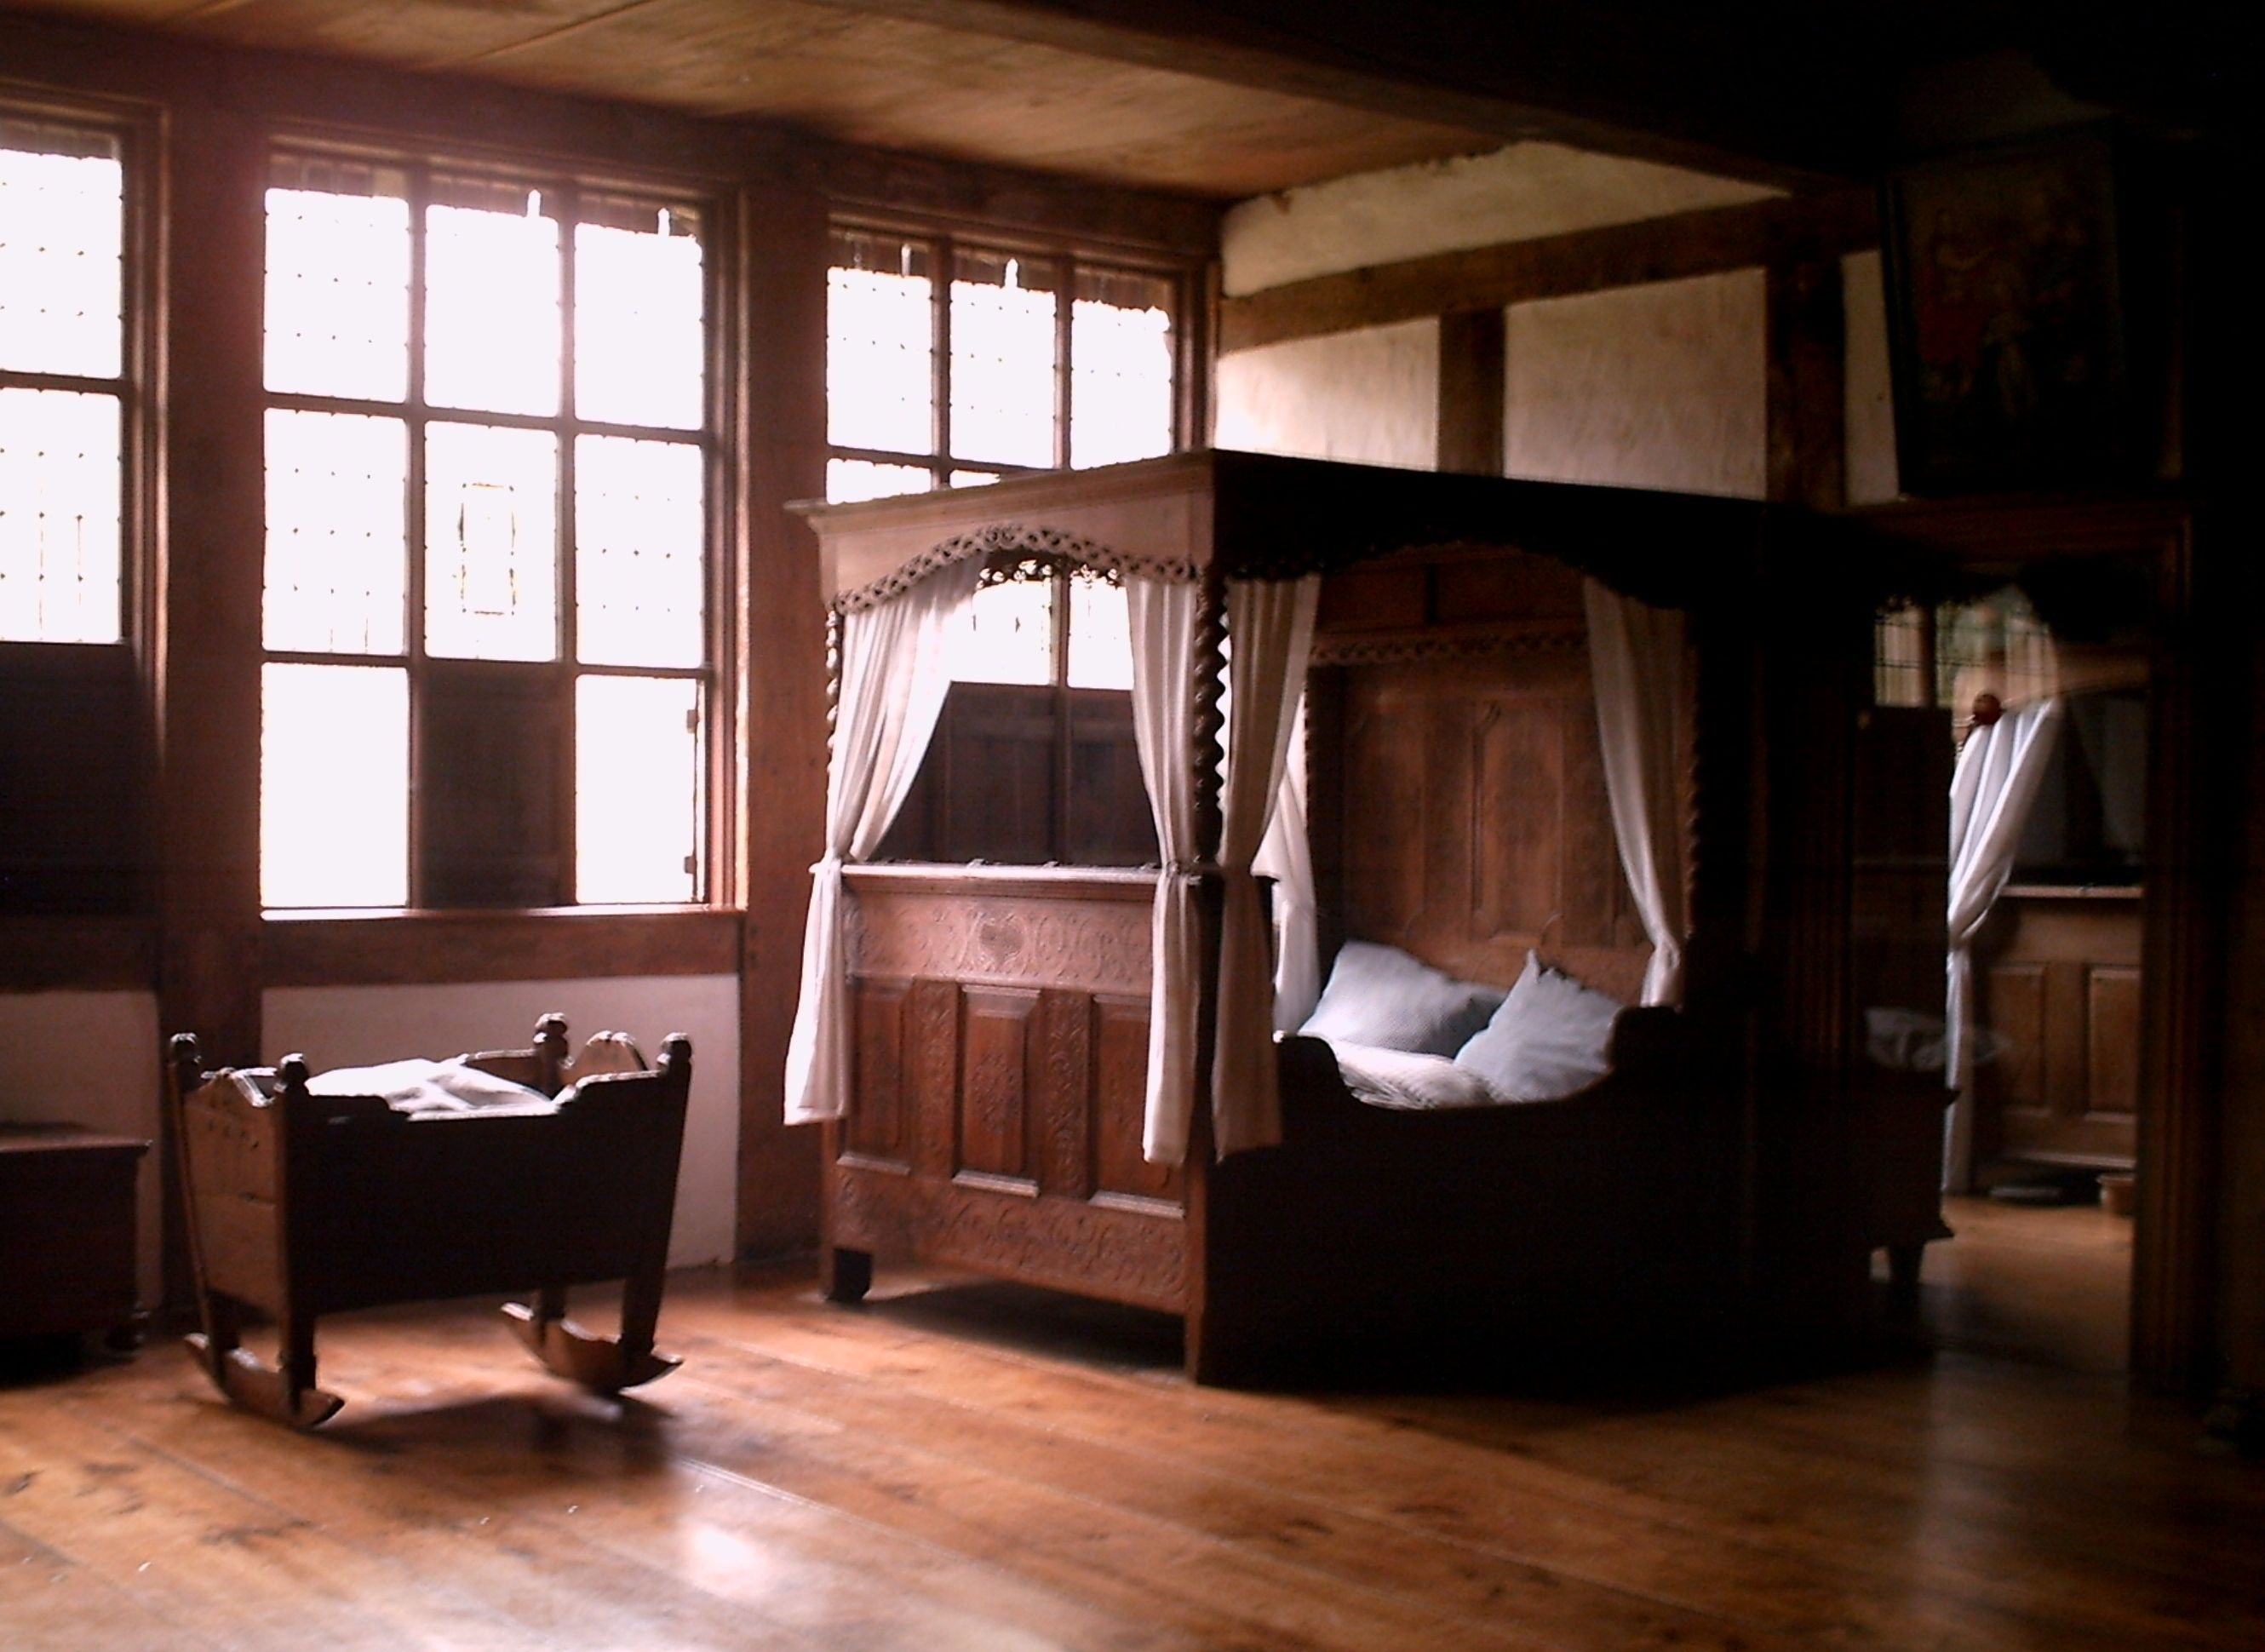 pin von janet wright auf pilgrim primitive colonial tudor pinterest wohnen mittelalter und burg. Black Bedroom Furniture Sets. Home Design Ideas